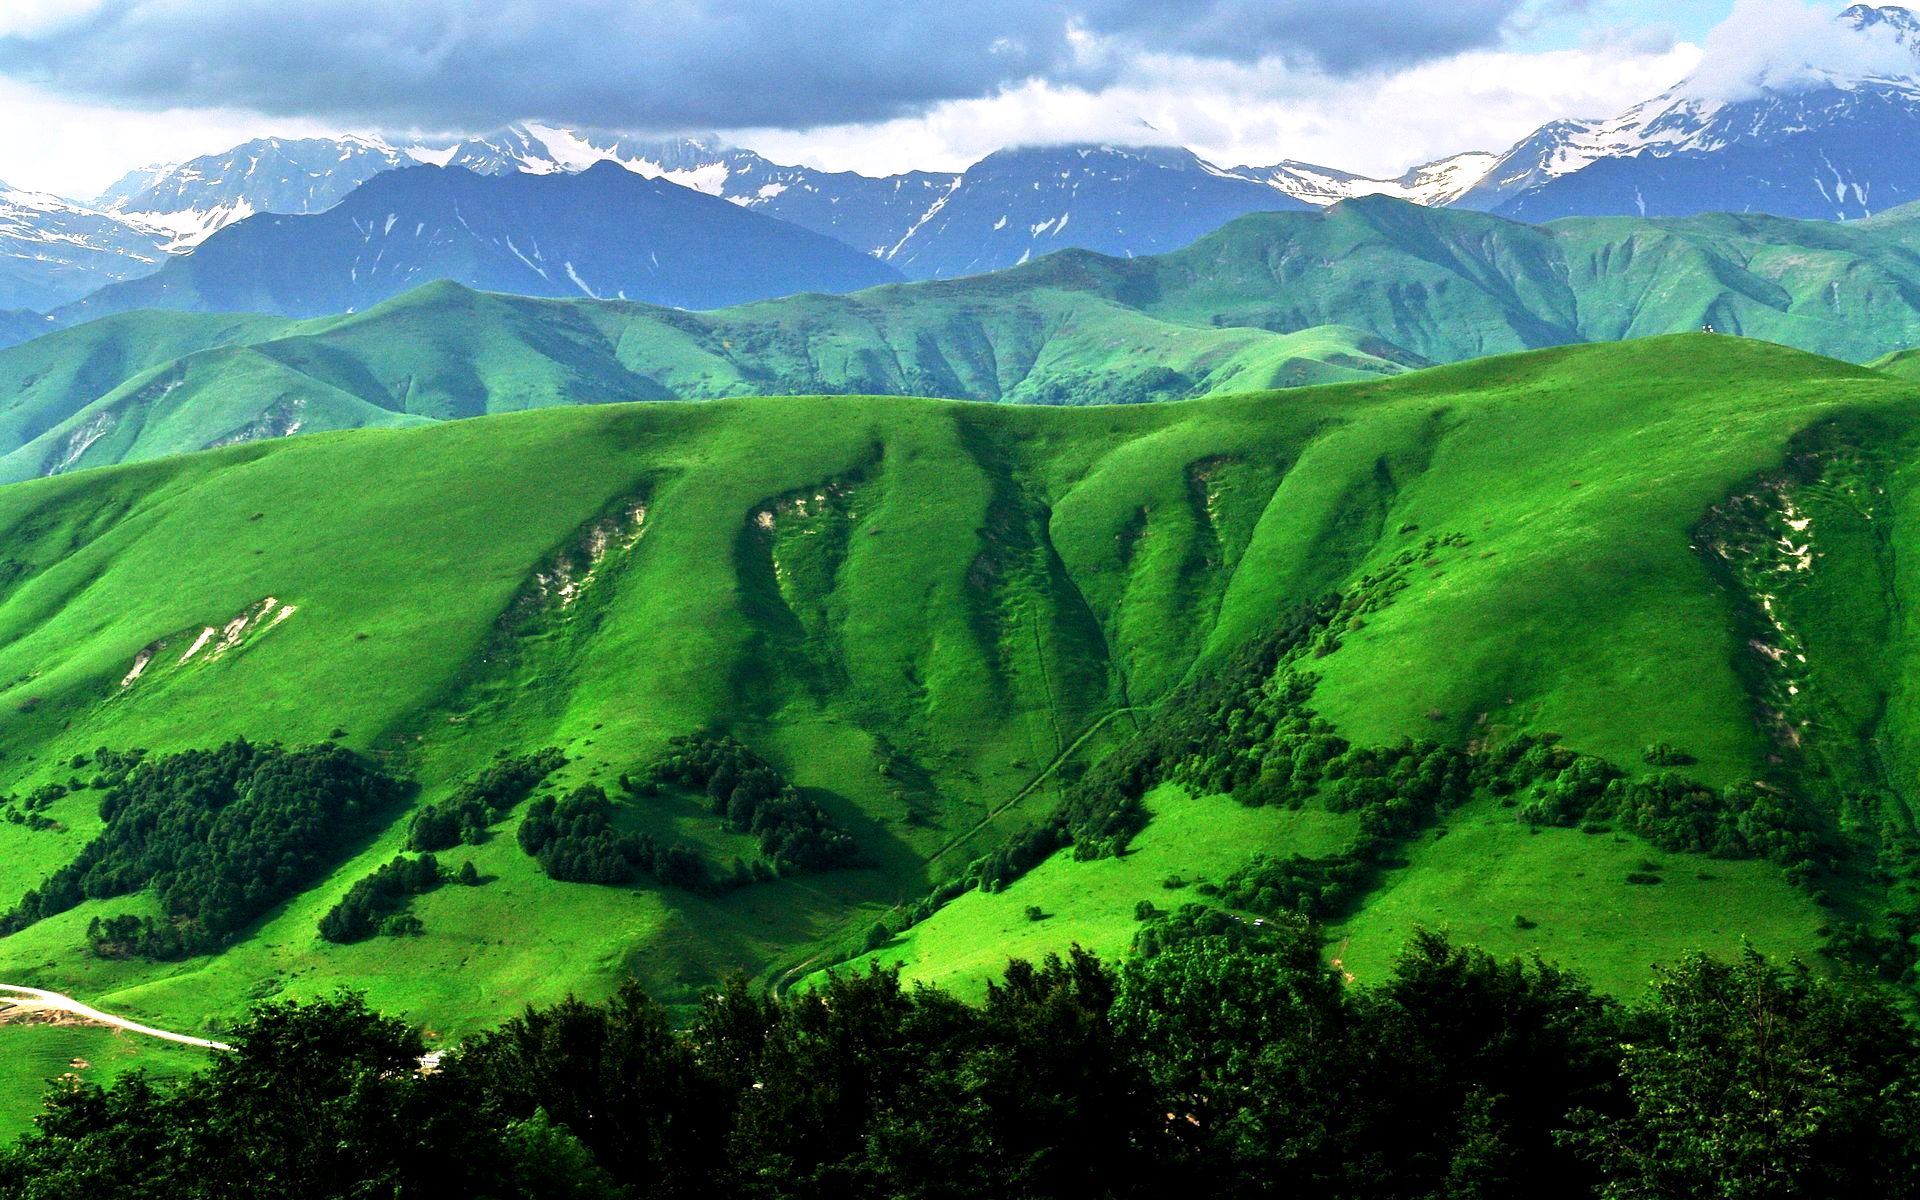 Photos For Backgrounds Full Hd Pc With Scenery Of Mountain Green ...